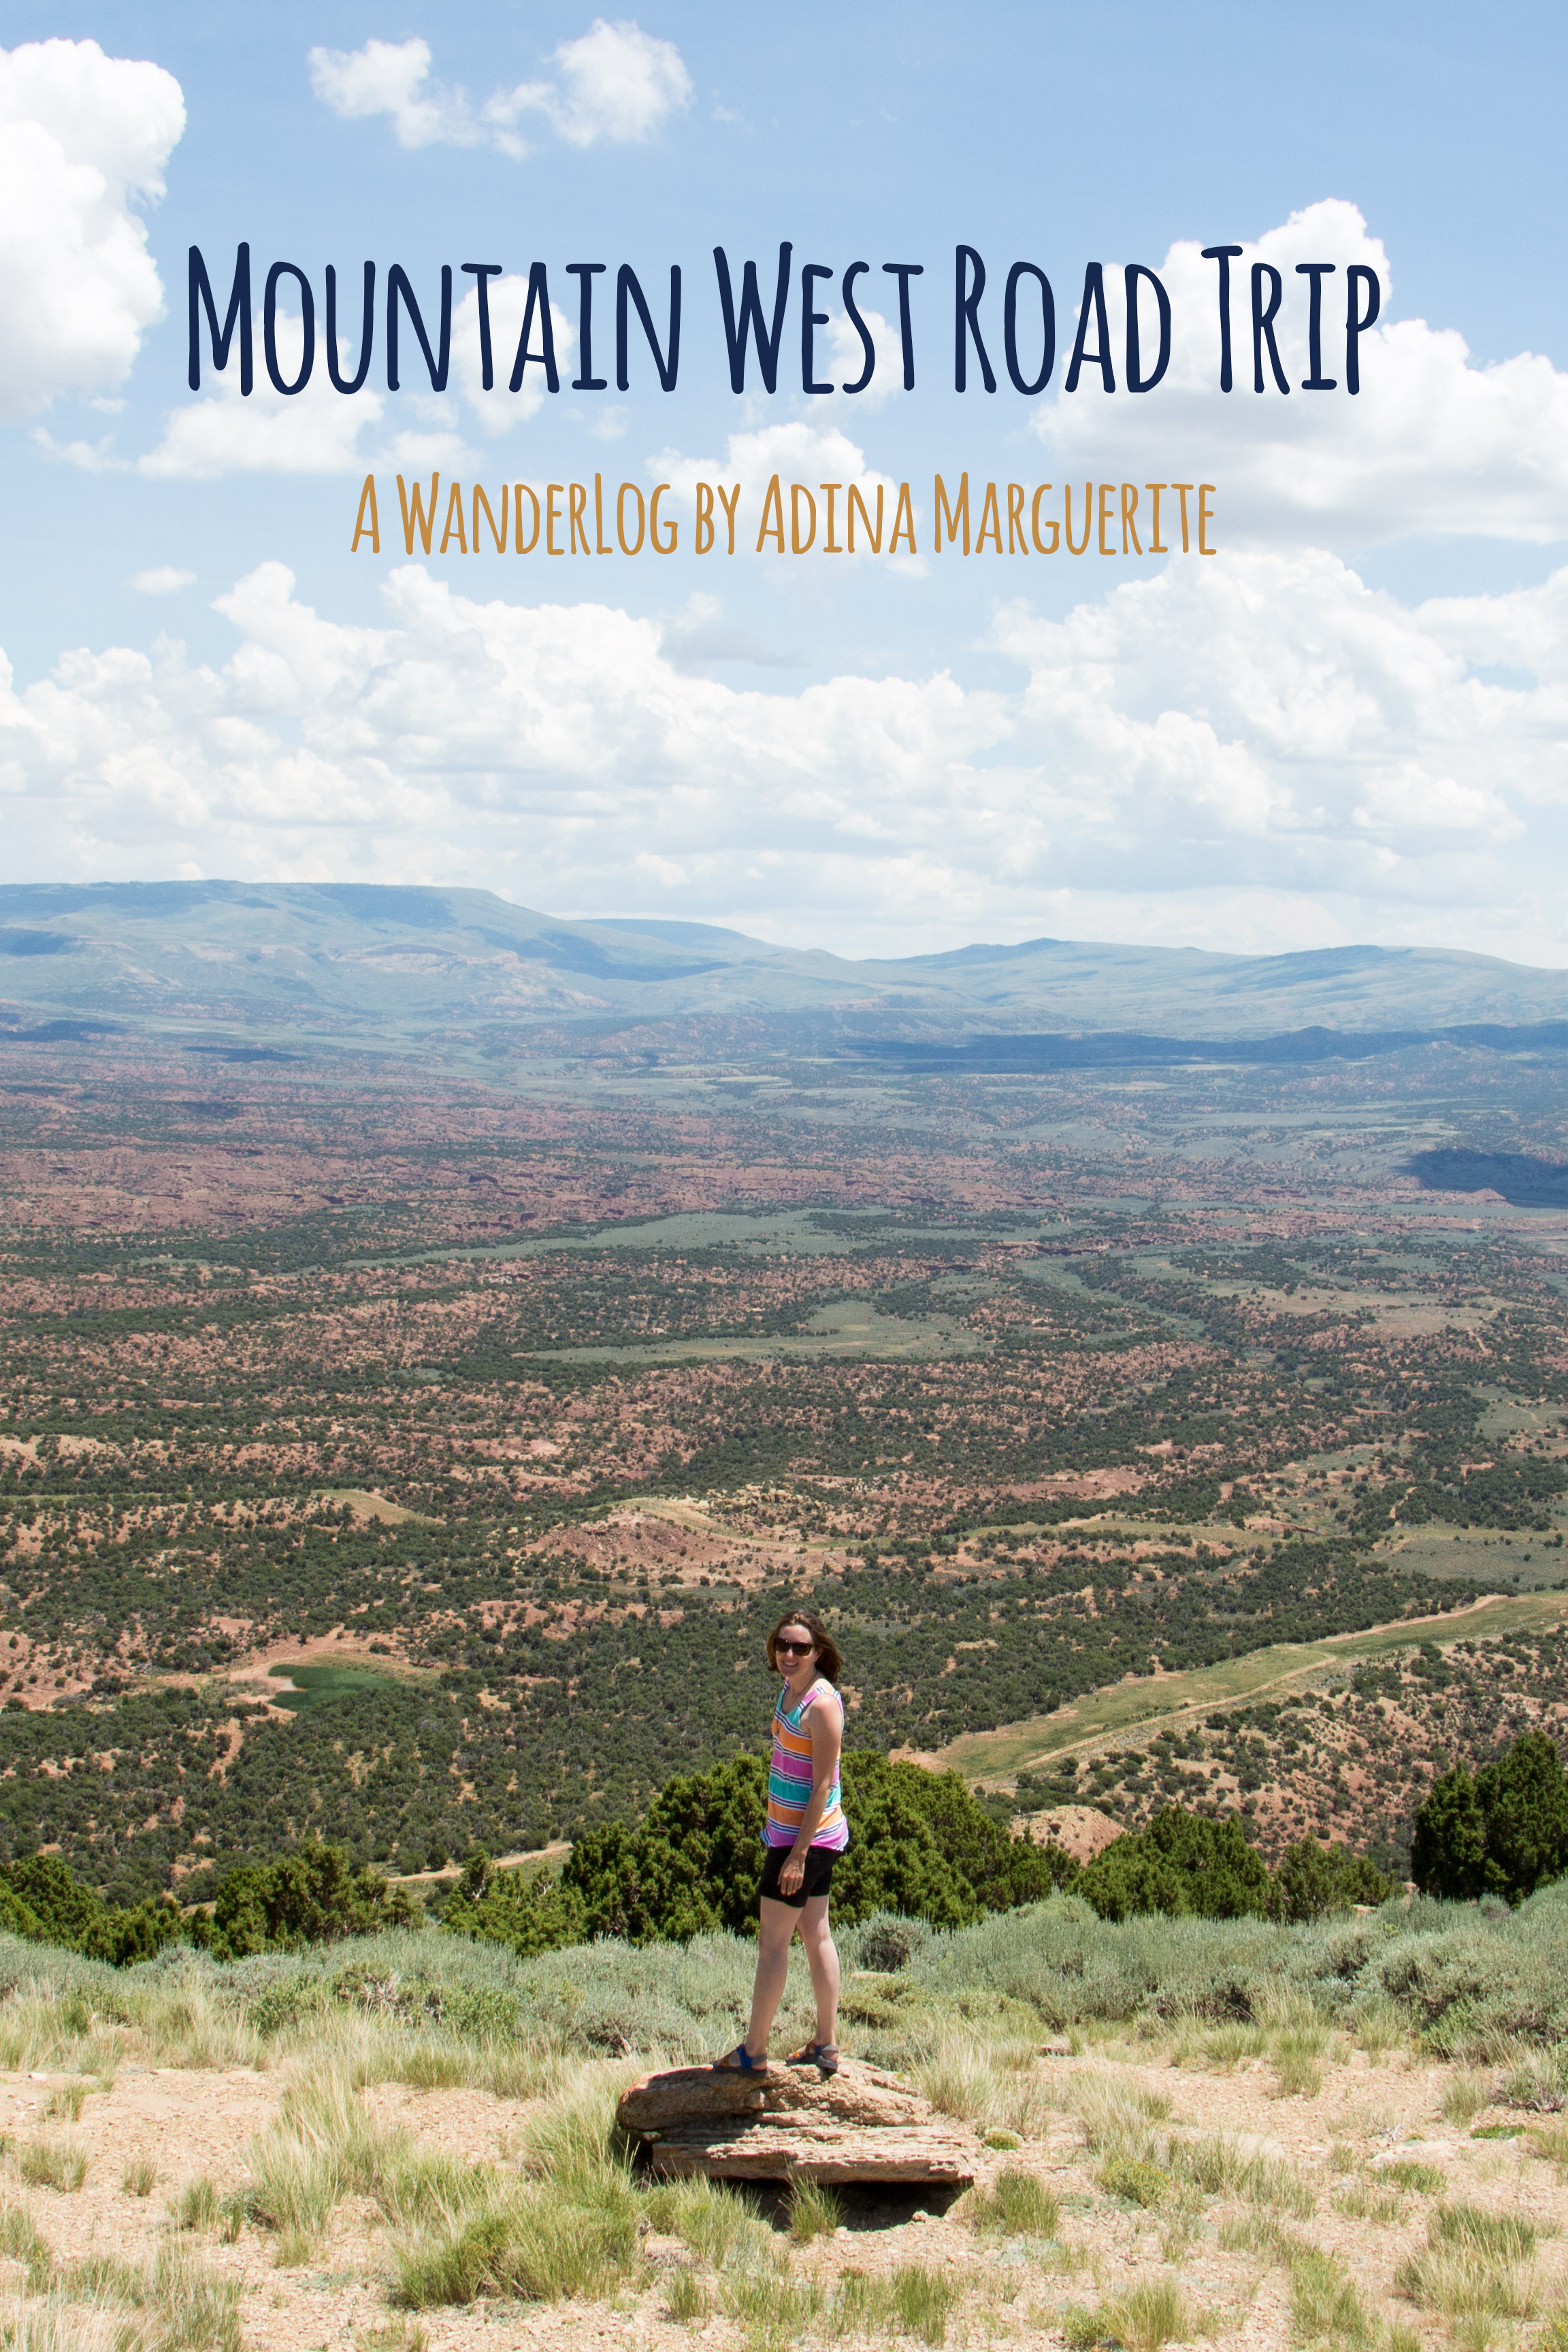 WanderLog: Mountain West RoadTrip by Adina Marguerite